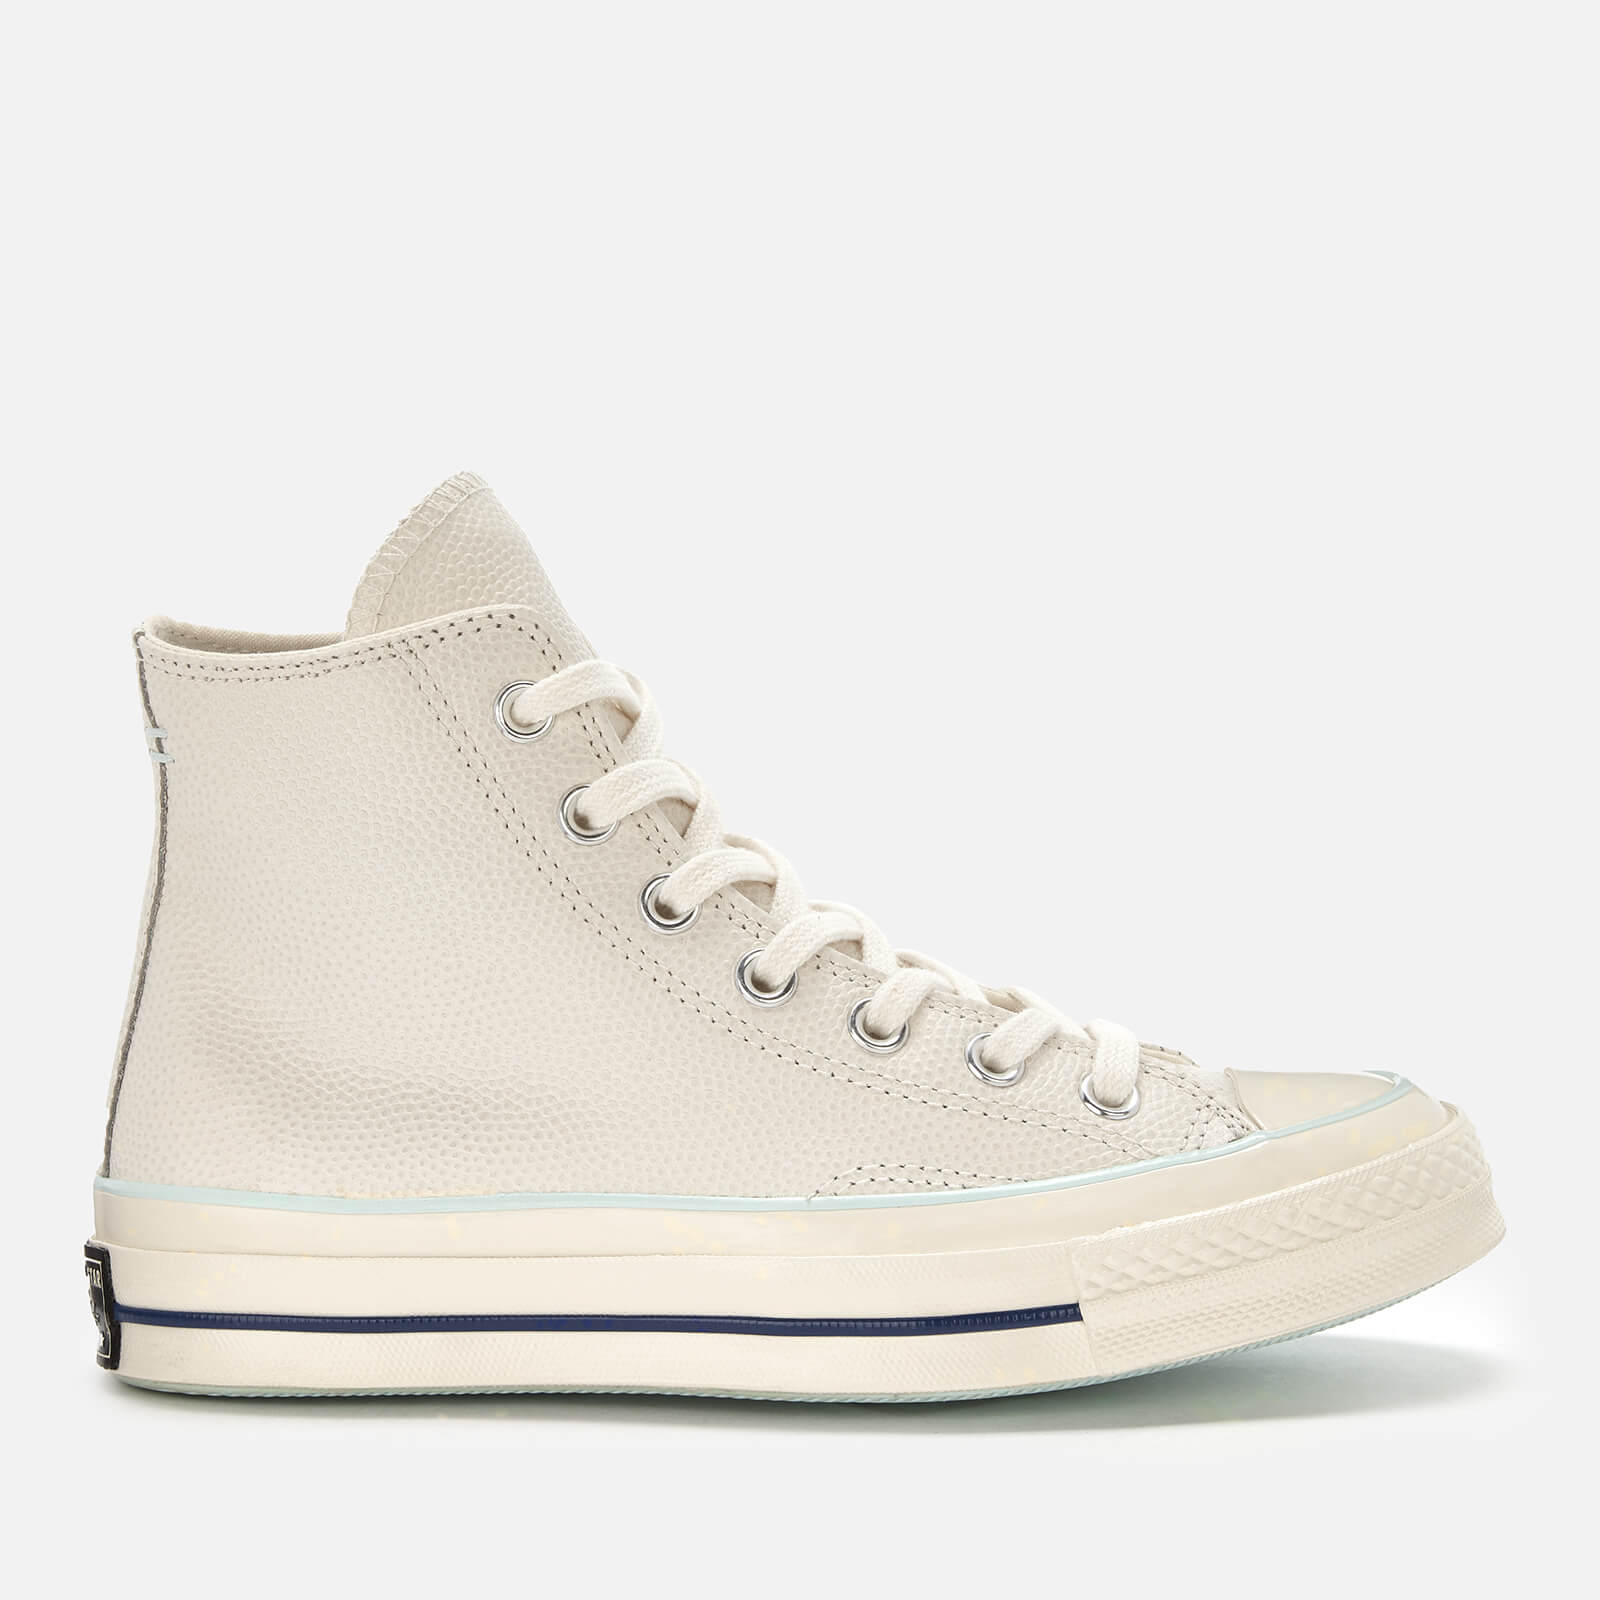 afa483f533a919 Converse Women s Chuck Taylor All Star 70 Hi-Top Trainers - Egret Teal Tint  - Free UK Delivery over £50